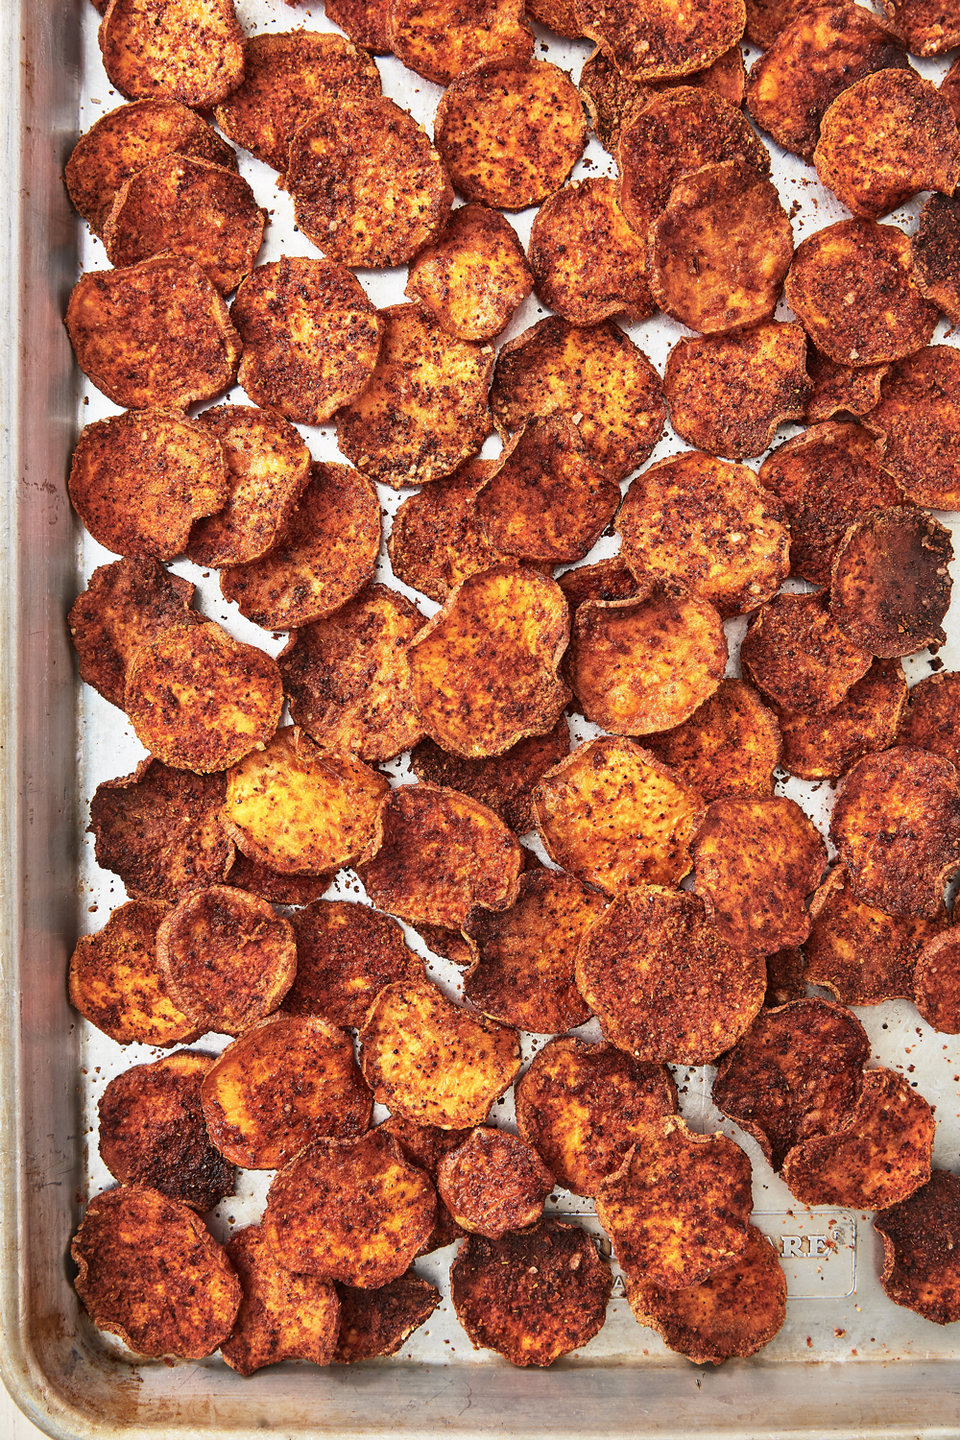 """<p>Satisfy a chip craving with these yummy chips.</p><p>Get the recipe from <a href=""""https://www.delish.com/cooking/recipe-ideas/recipes/a49369/sweet-potato-chips-recipe/"""" rel=""""nofollow noopener"""" target=""""_blank"""" data-ylk=""""slk:Delish"""" class=""""link rapid-noclick-resp"""">Delish</a>. </p>"""